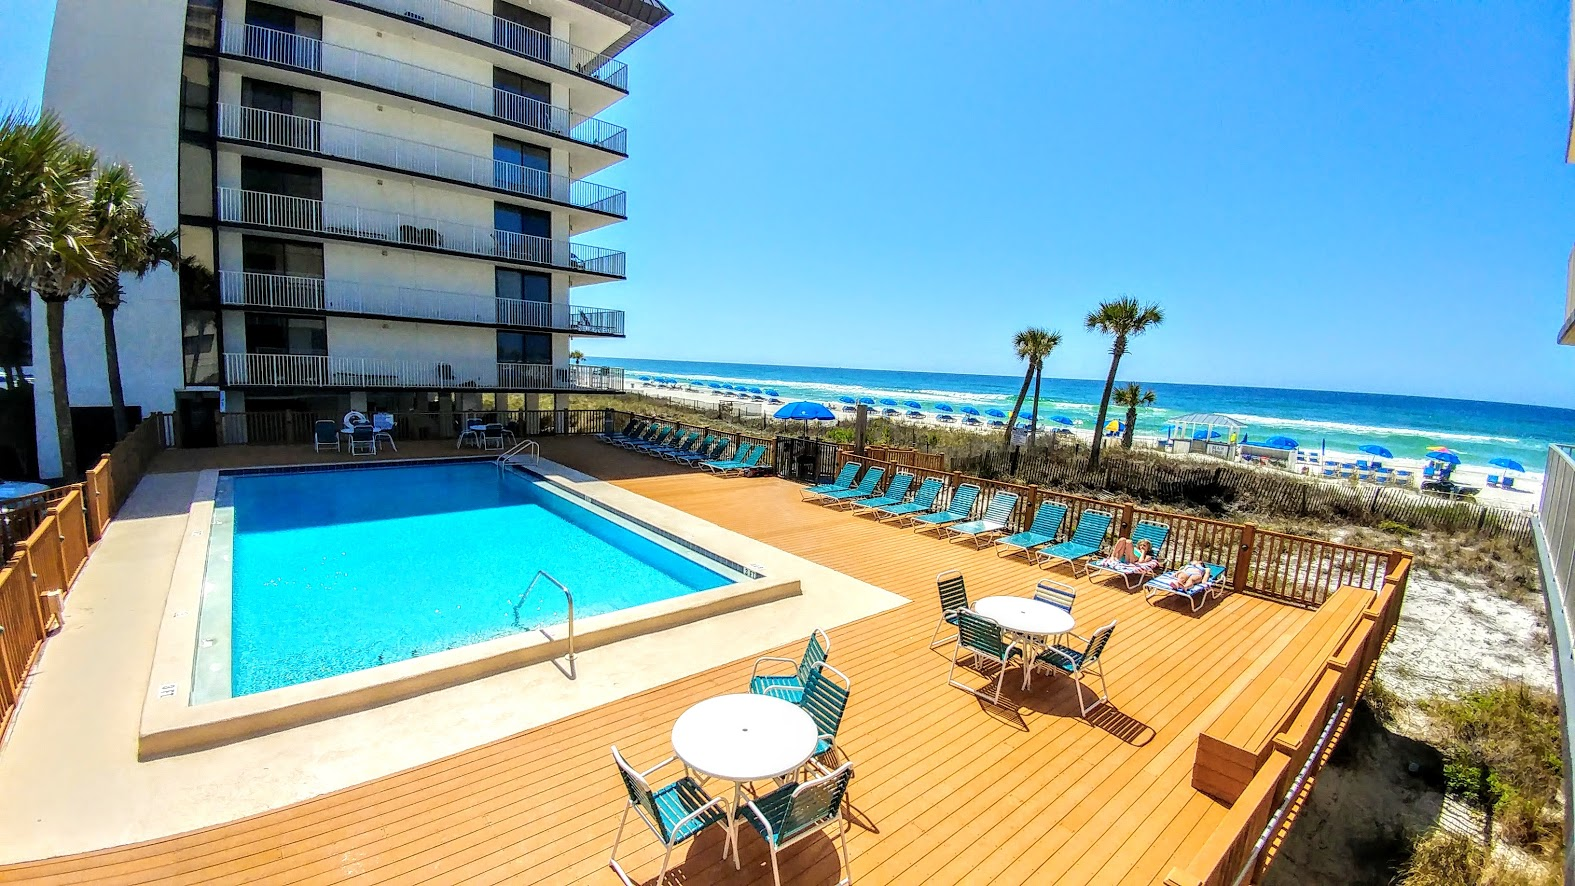 Vacation rentals in PCB with pools